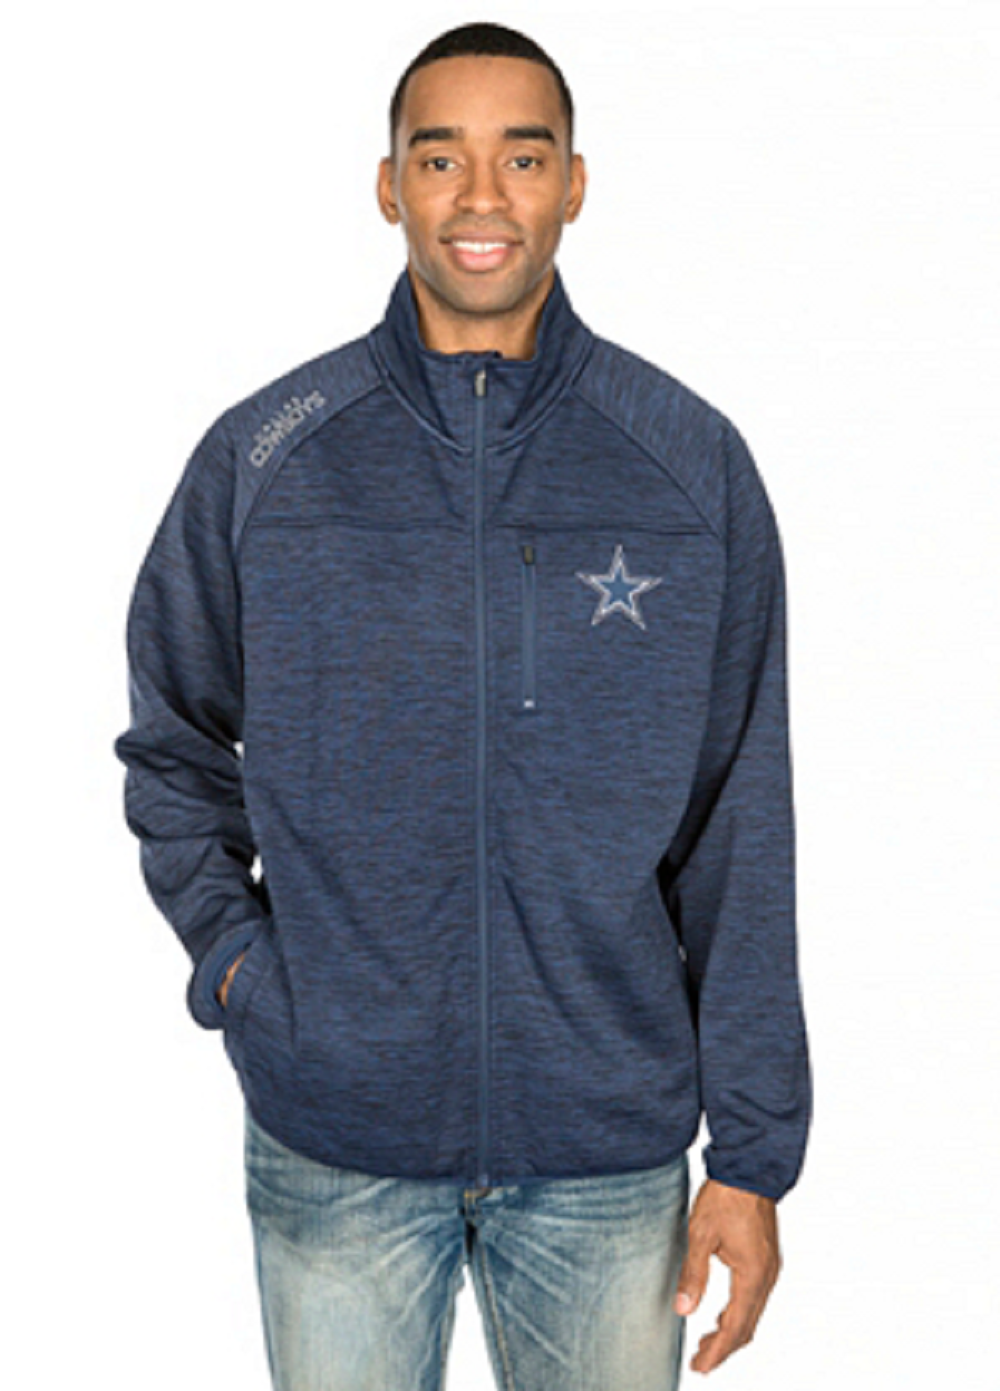 Dallas Cowboys Men's Mindset Jacket by Dallas Cowboys Merchandise